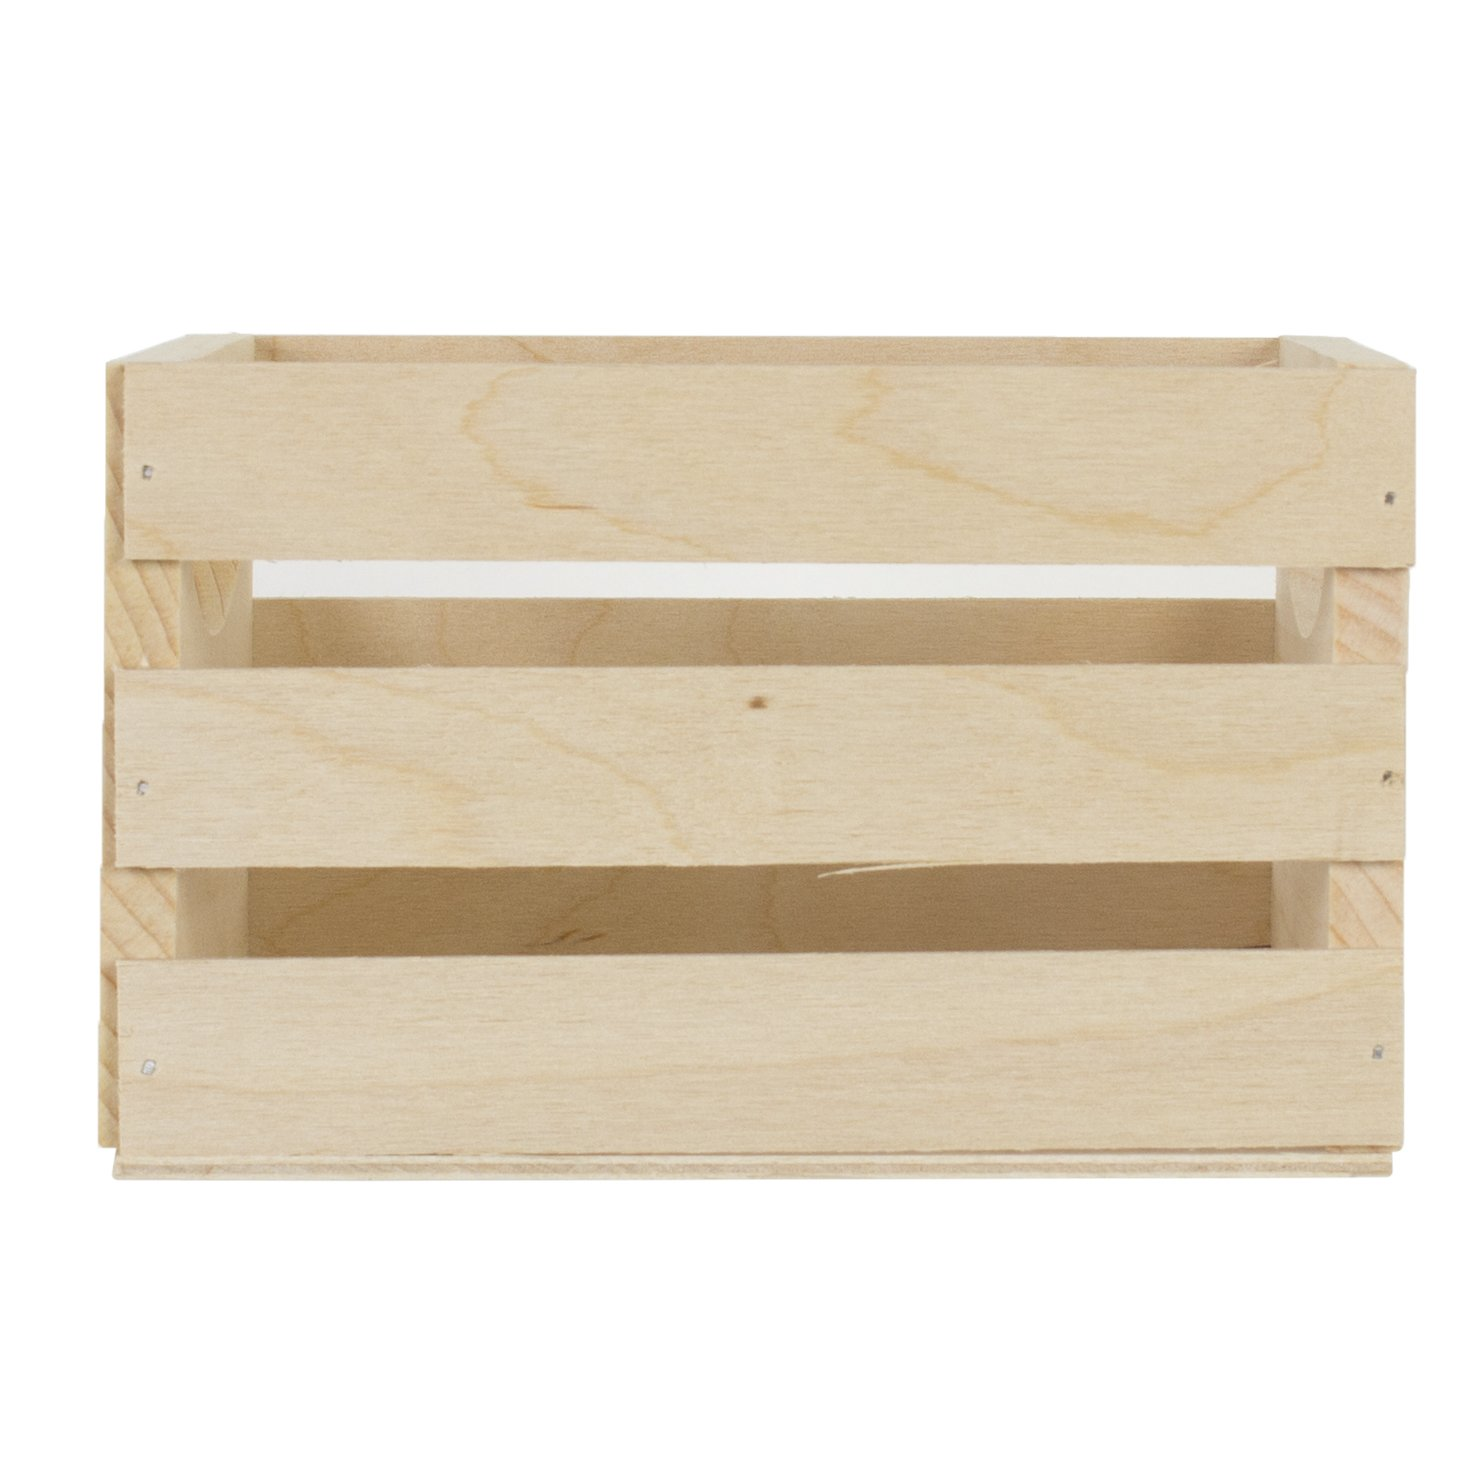 Beige 6.5X5.5X3.5 Walnut Hollow Mini Wooden Crate with Handles-6.5 5.3 x 4.25-inch